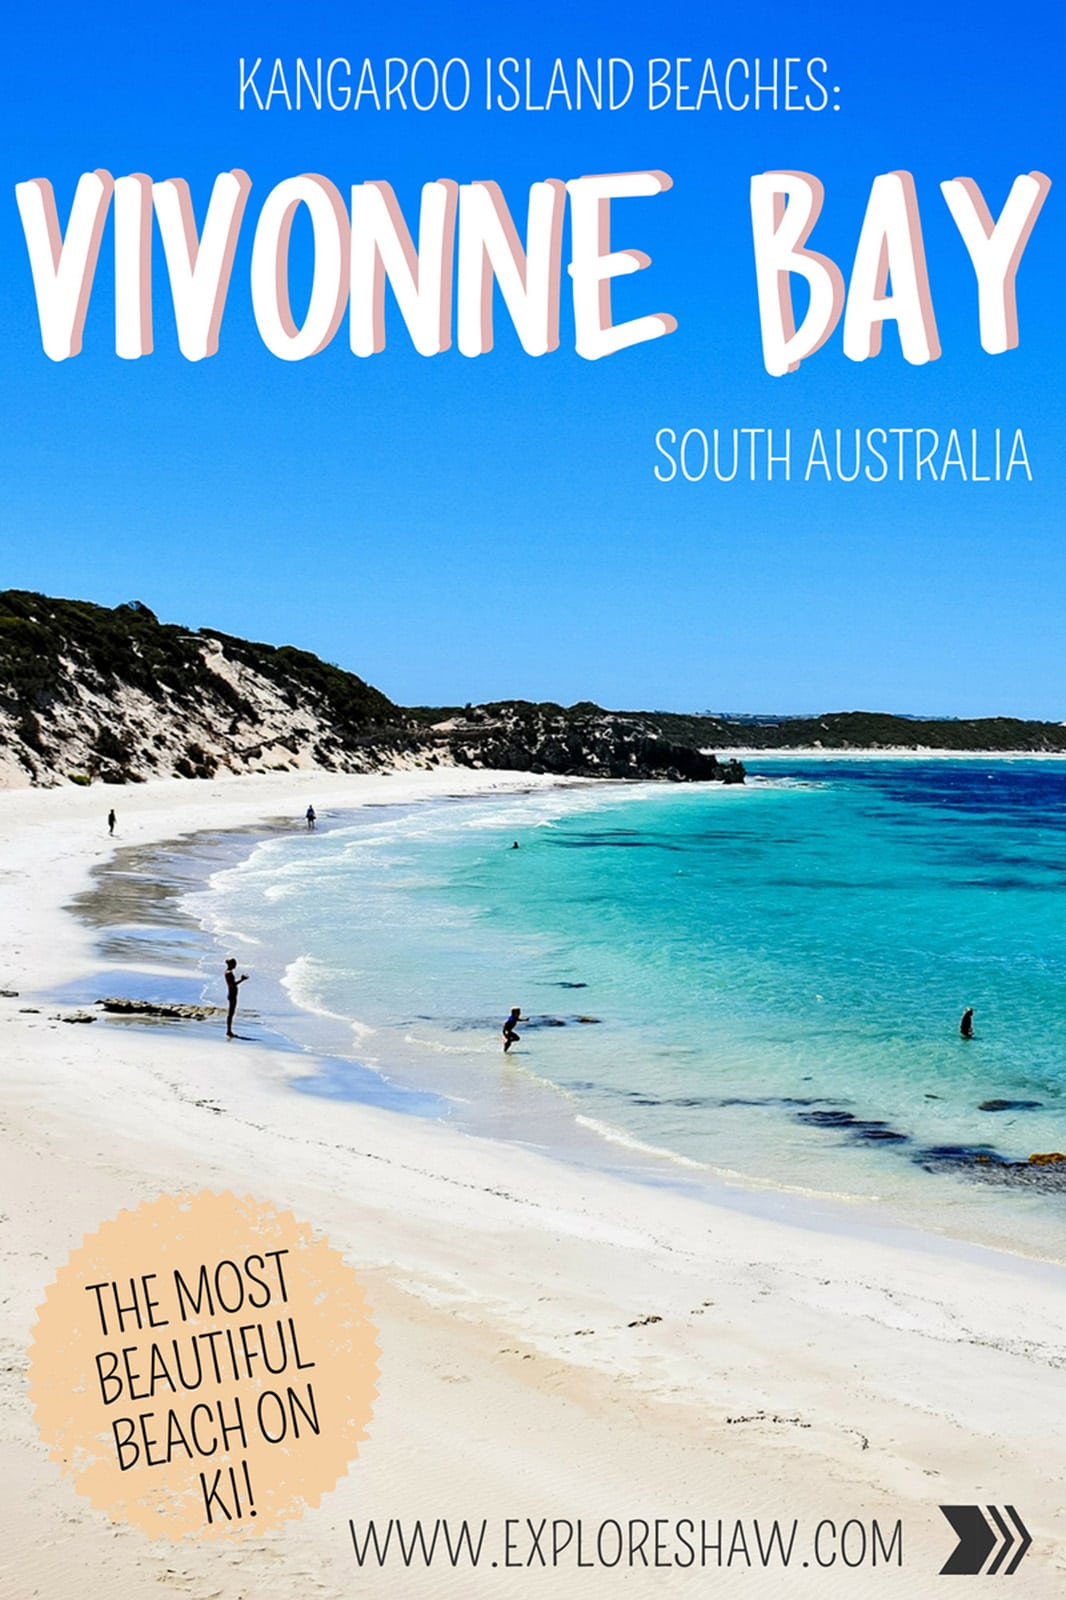 Vivonne Bay is the perfect secluded beach on Kangaroo Island - there's no one around! Check out the best time to visit to have this mini paradise all to yourself. #KangarooIsland #SouthAustralia #Australia #VivonneBay